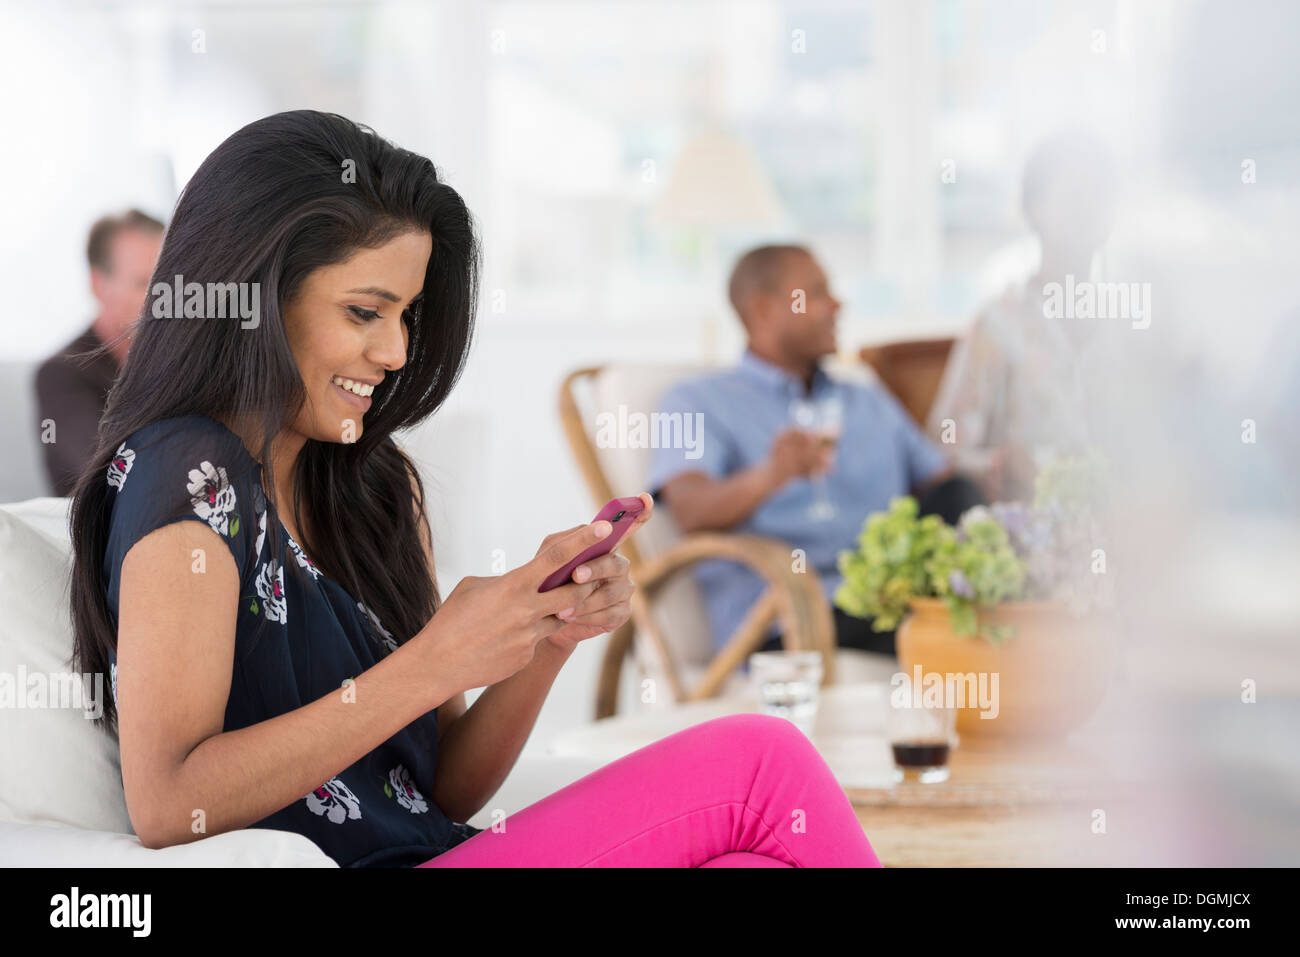 Office event. A woman seated on the sofa using her smart phone. - Stock Image